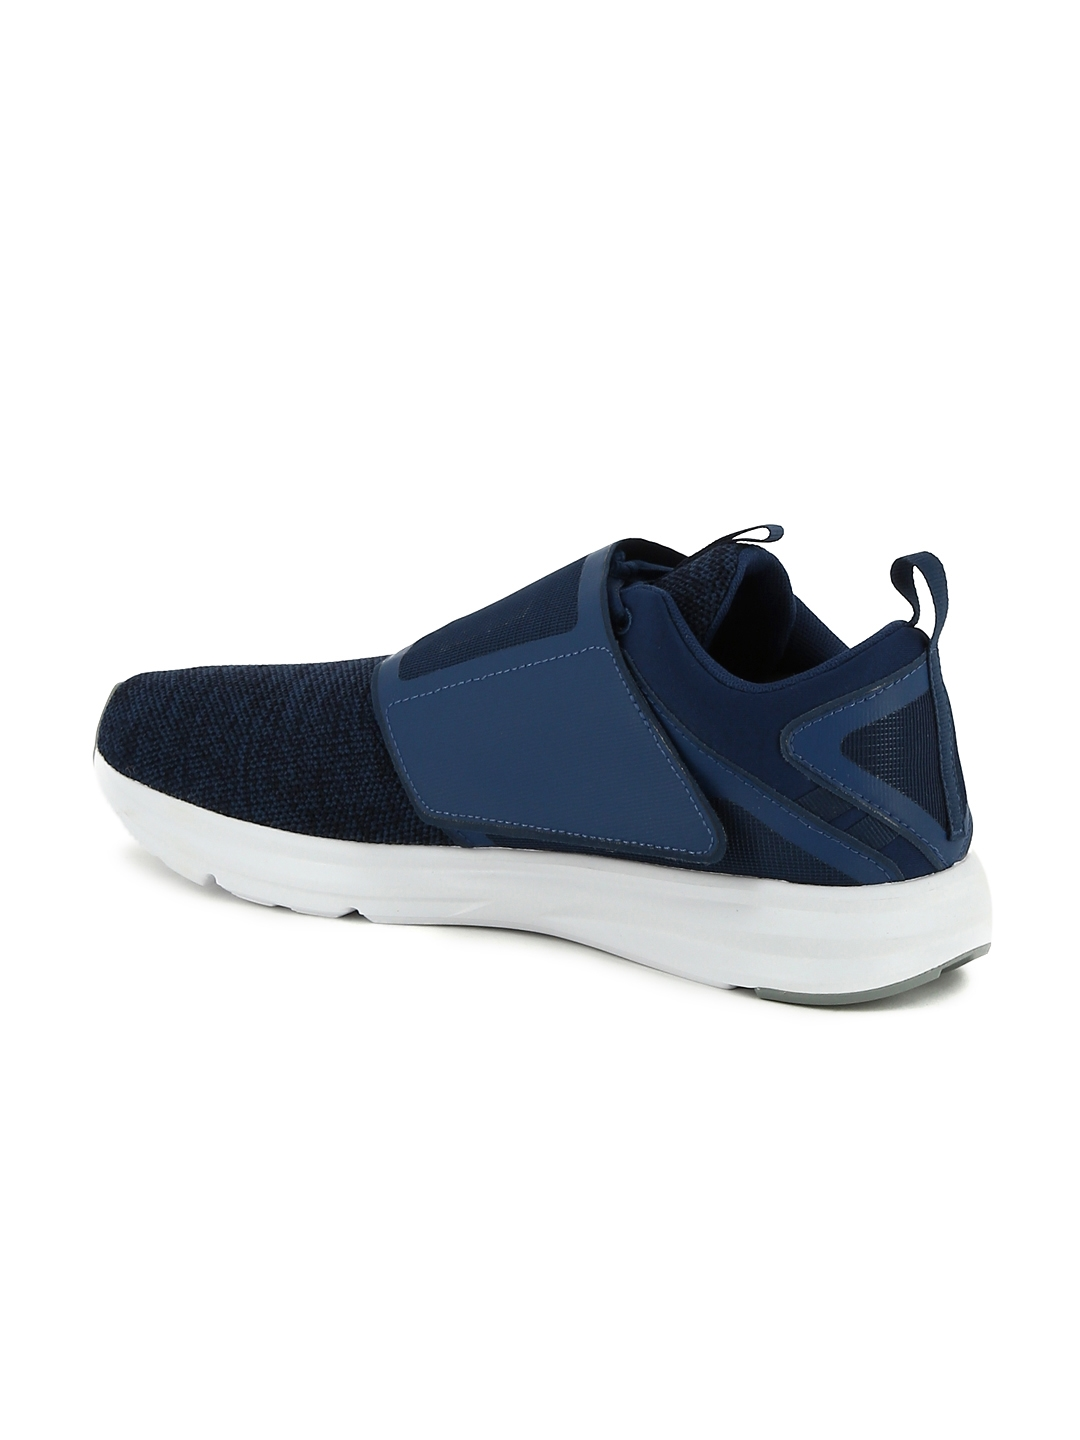 Buy Puma Men Blue Enzo Strap Knit Running Shoes - Sports Shoes for ... f3749f940